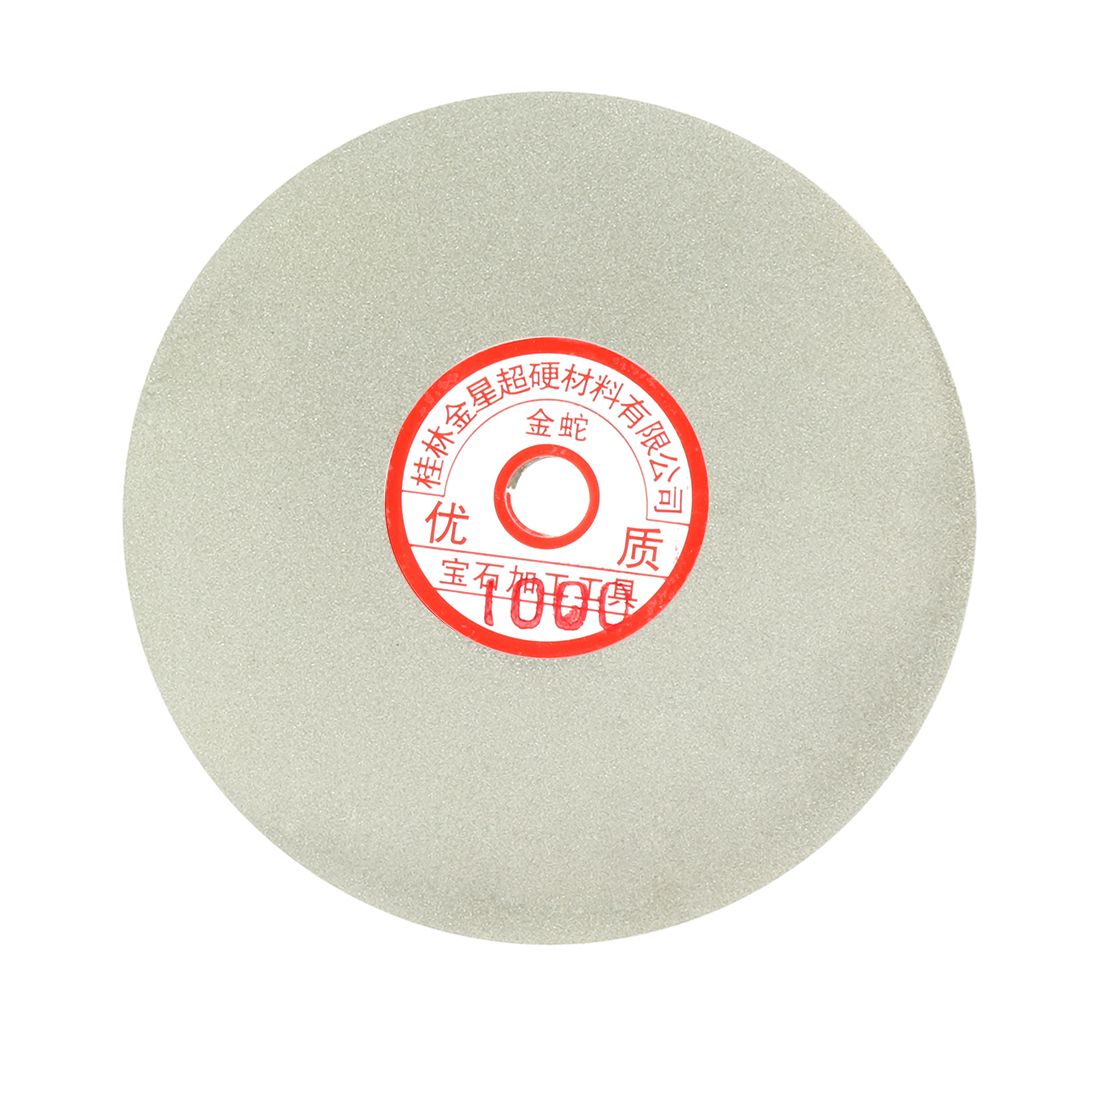 6-inch Grit 1000 Diamond Coated Flat Lap Wheel Grinding Sanding Polishing Disc